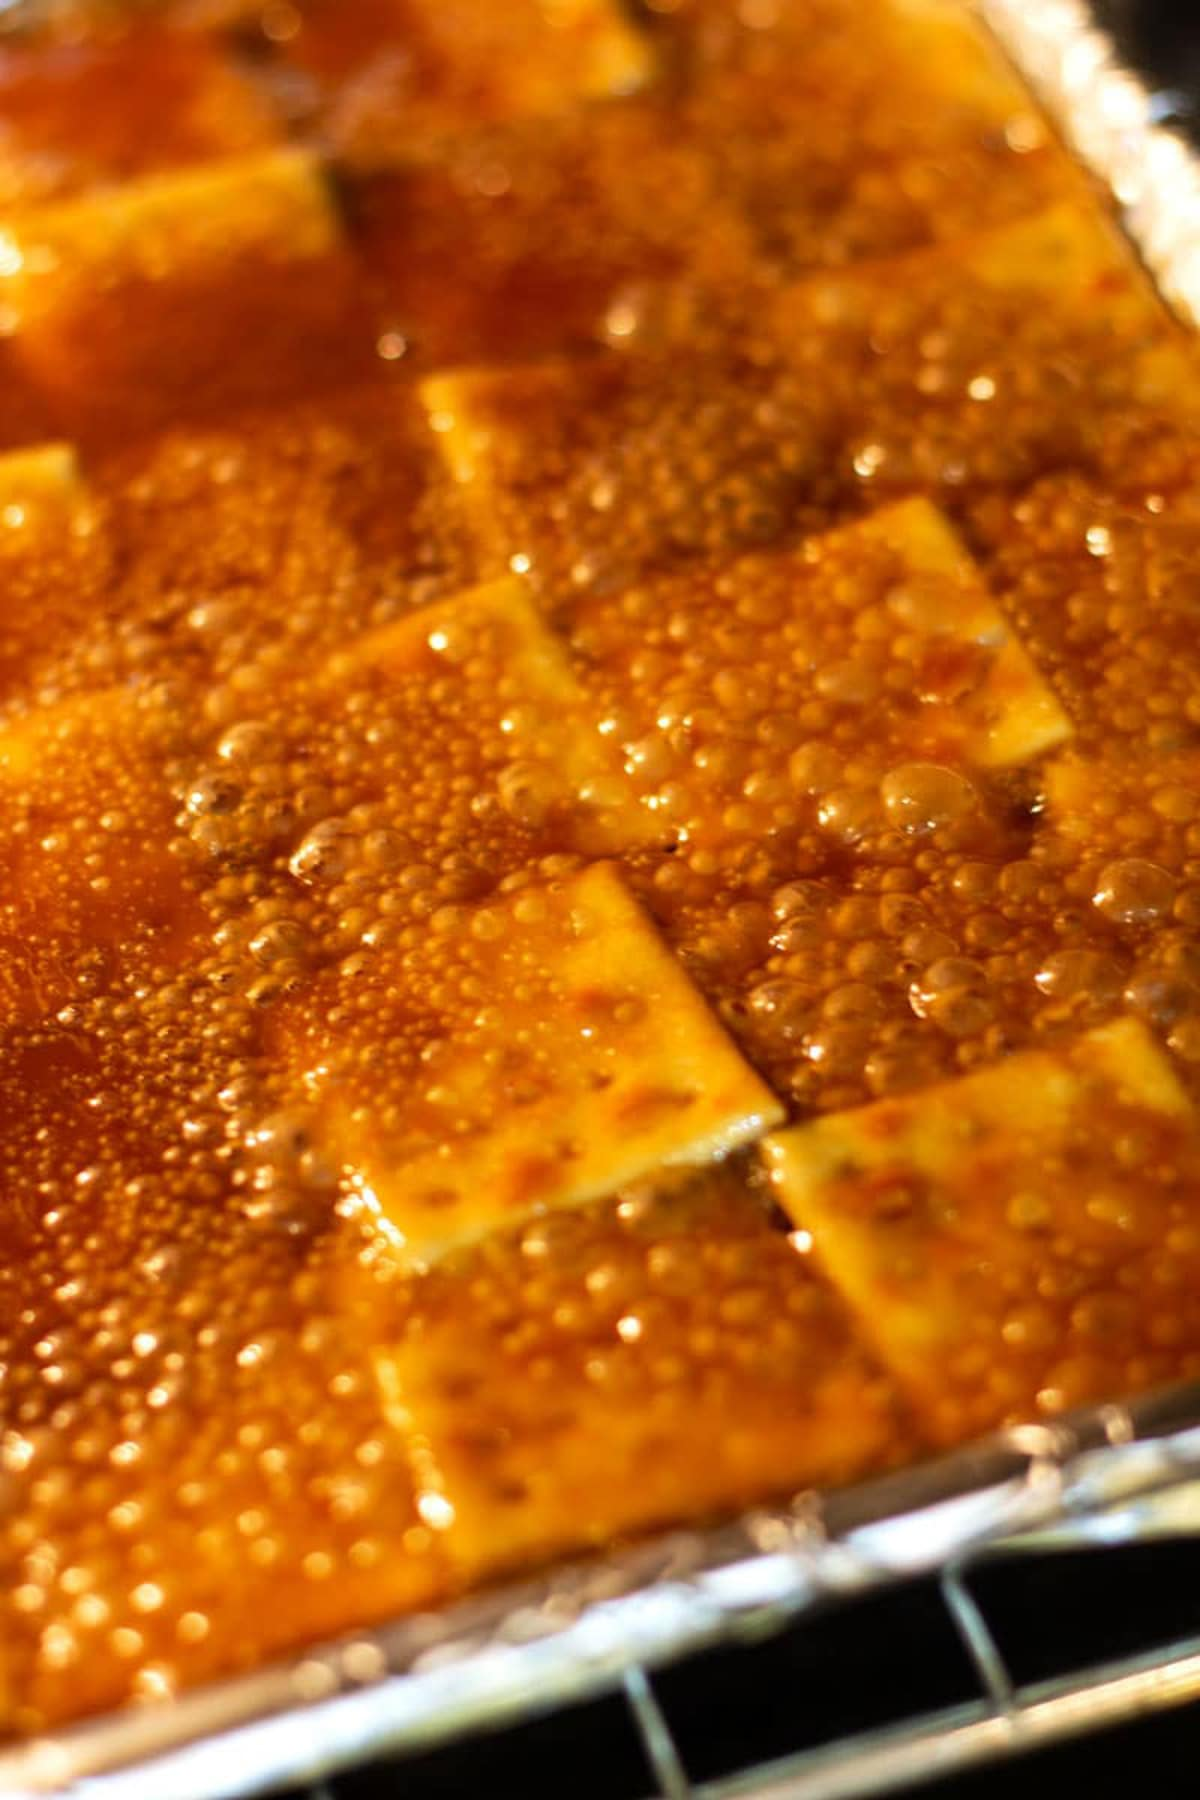 Caramel sauce bubbling in the oven over saltine crackers in preparation for making Halloween bark.